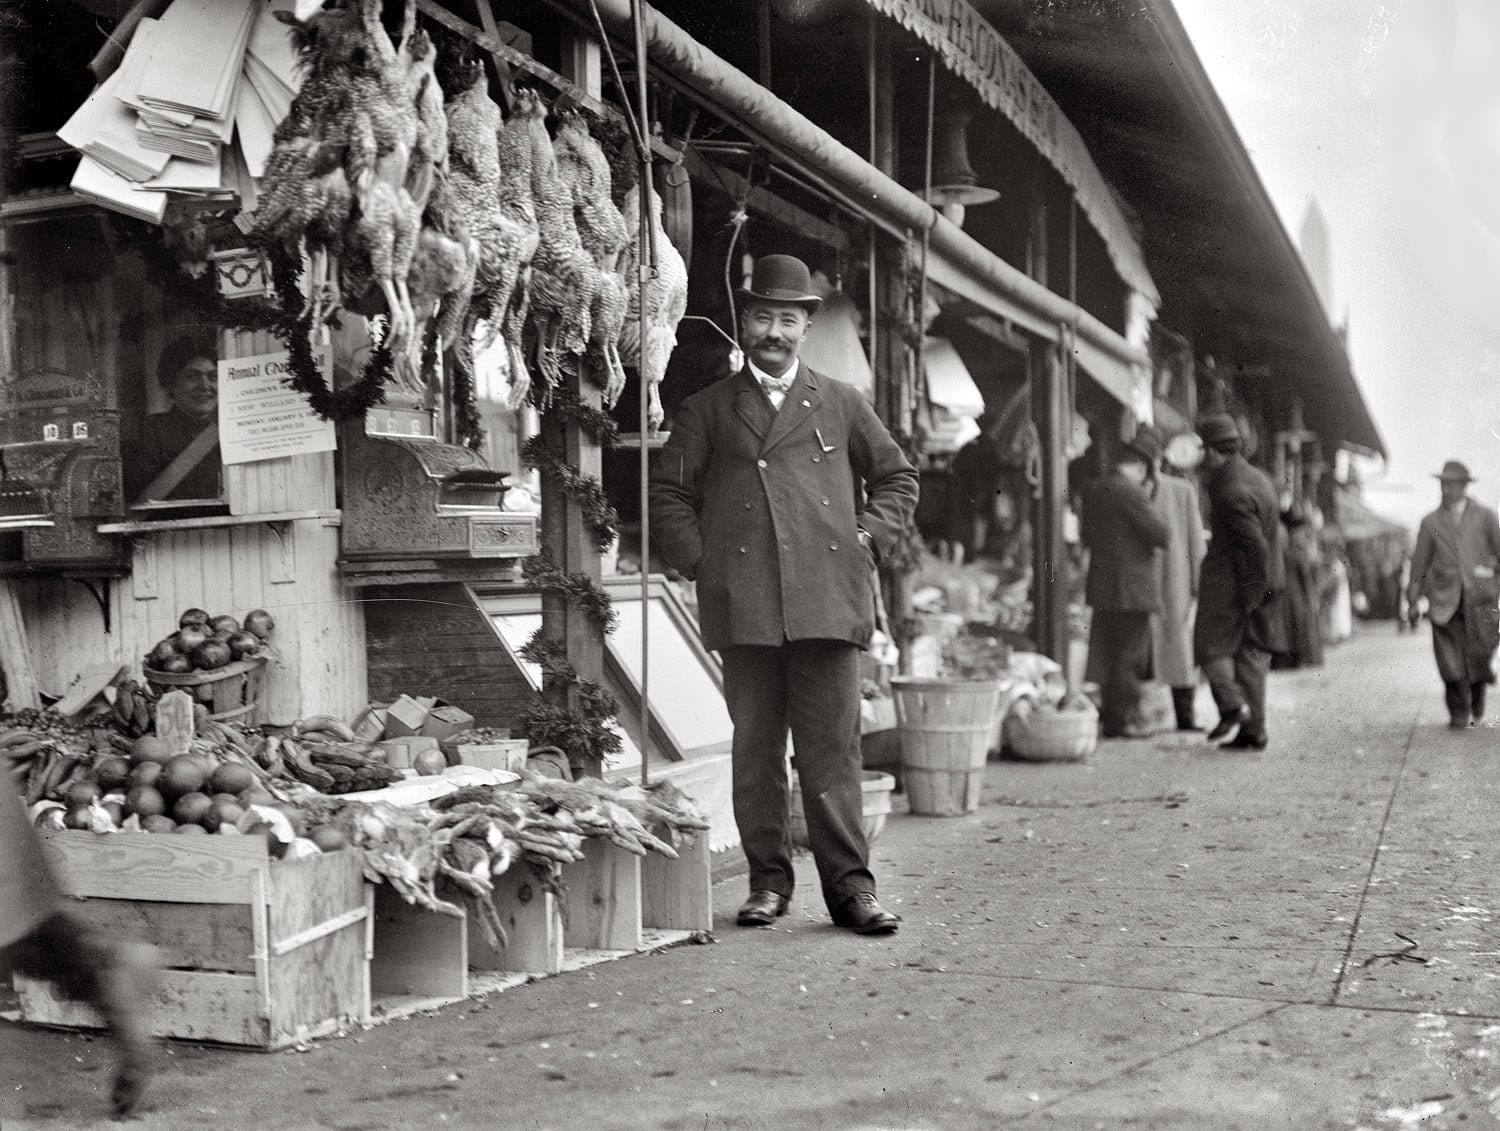 P.K. Chaconas Co. Market circa 1915; George Chaconas pictured in front (Shorpy)